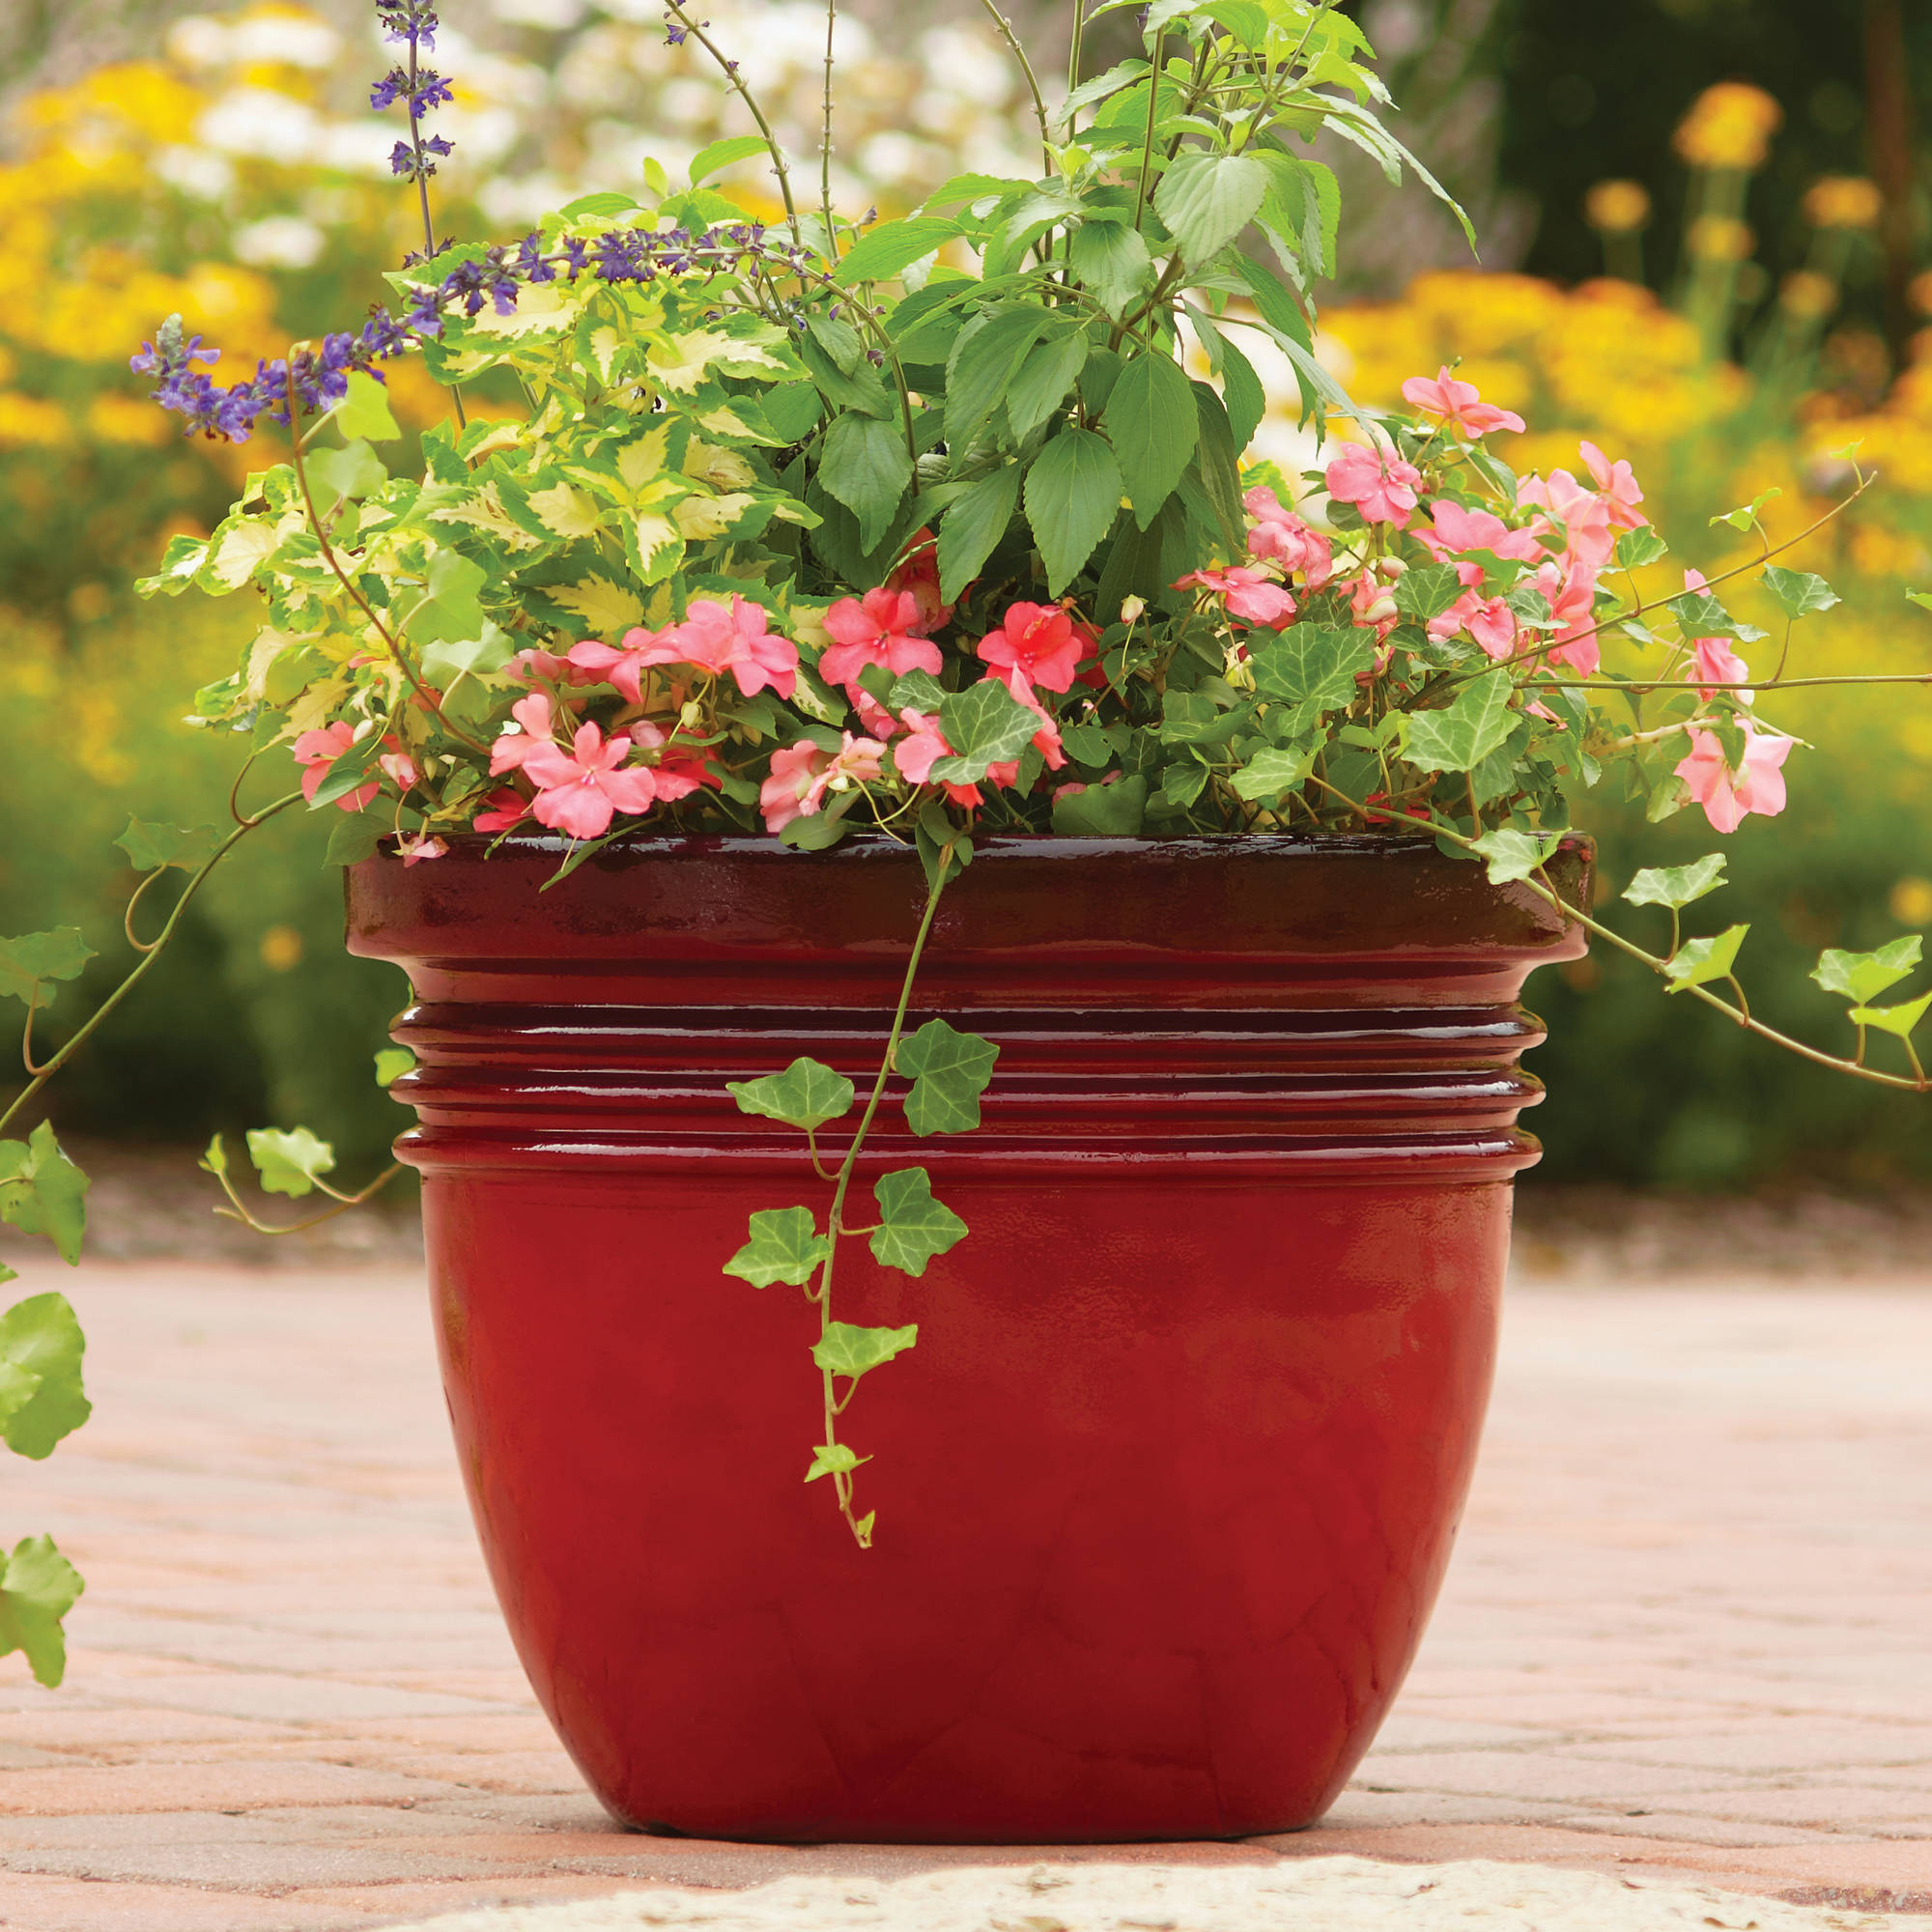 Better homes and gardens bombay decorative outdoor planter red better homes and gardens bombay decorative outdoor planter red sedona 16 walmart workwithnaturefo